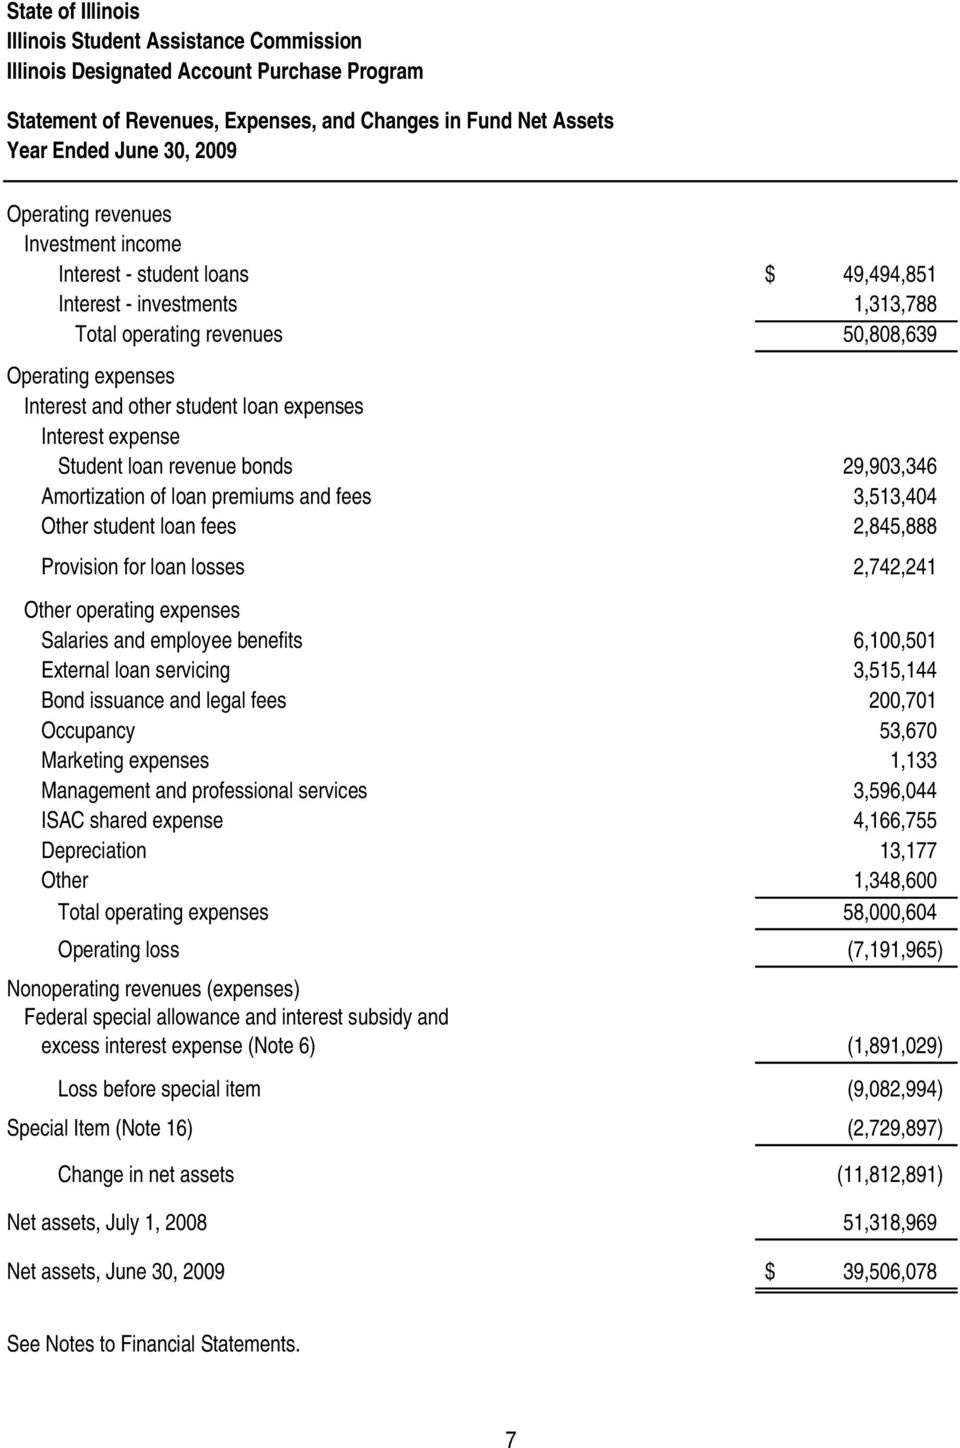 Other student loan fees 2,845,888 Provision for loan losses 2,742,241 Other operating expenses Salaries and employee benefits 6,100,501 External loan servicing 3,515,144 Bond issuance and legal fees